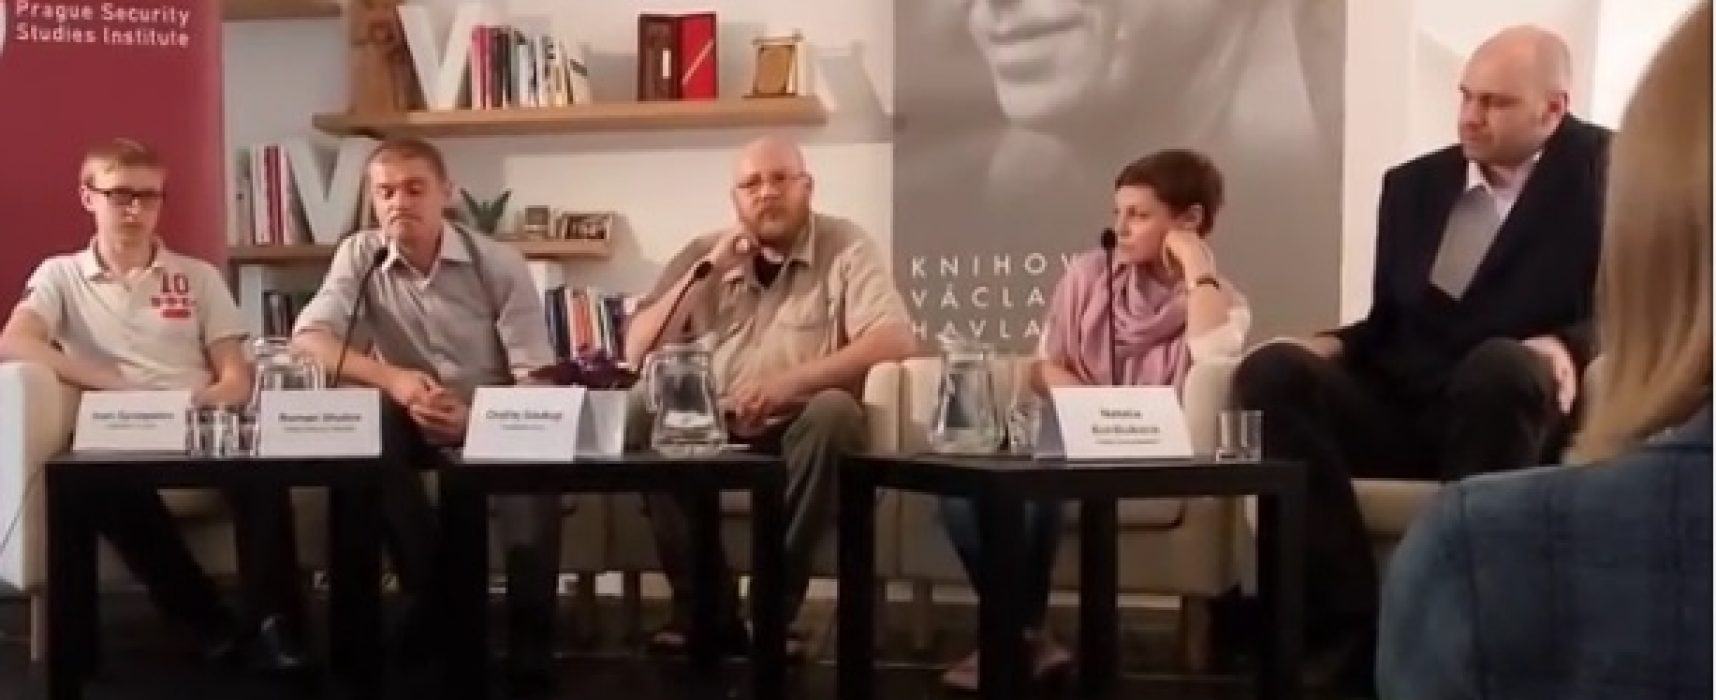 Russian Propaganda and Disinformation in Ukraine: Current Challenges and the Way Forward